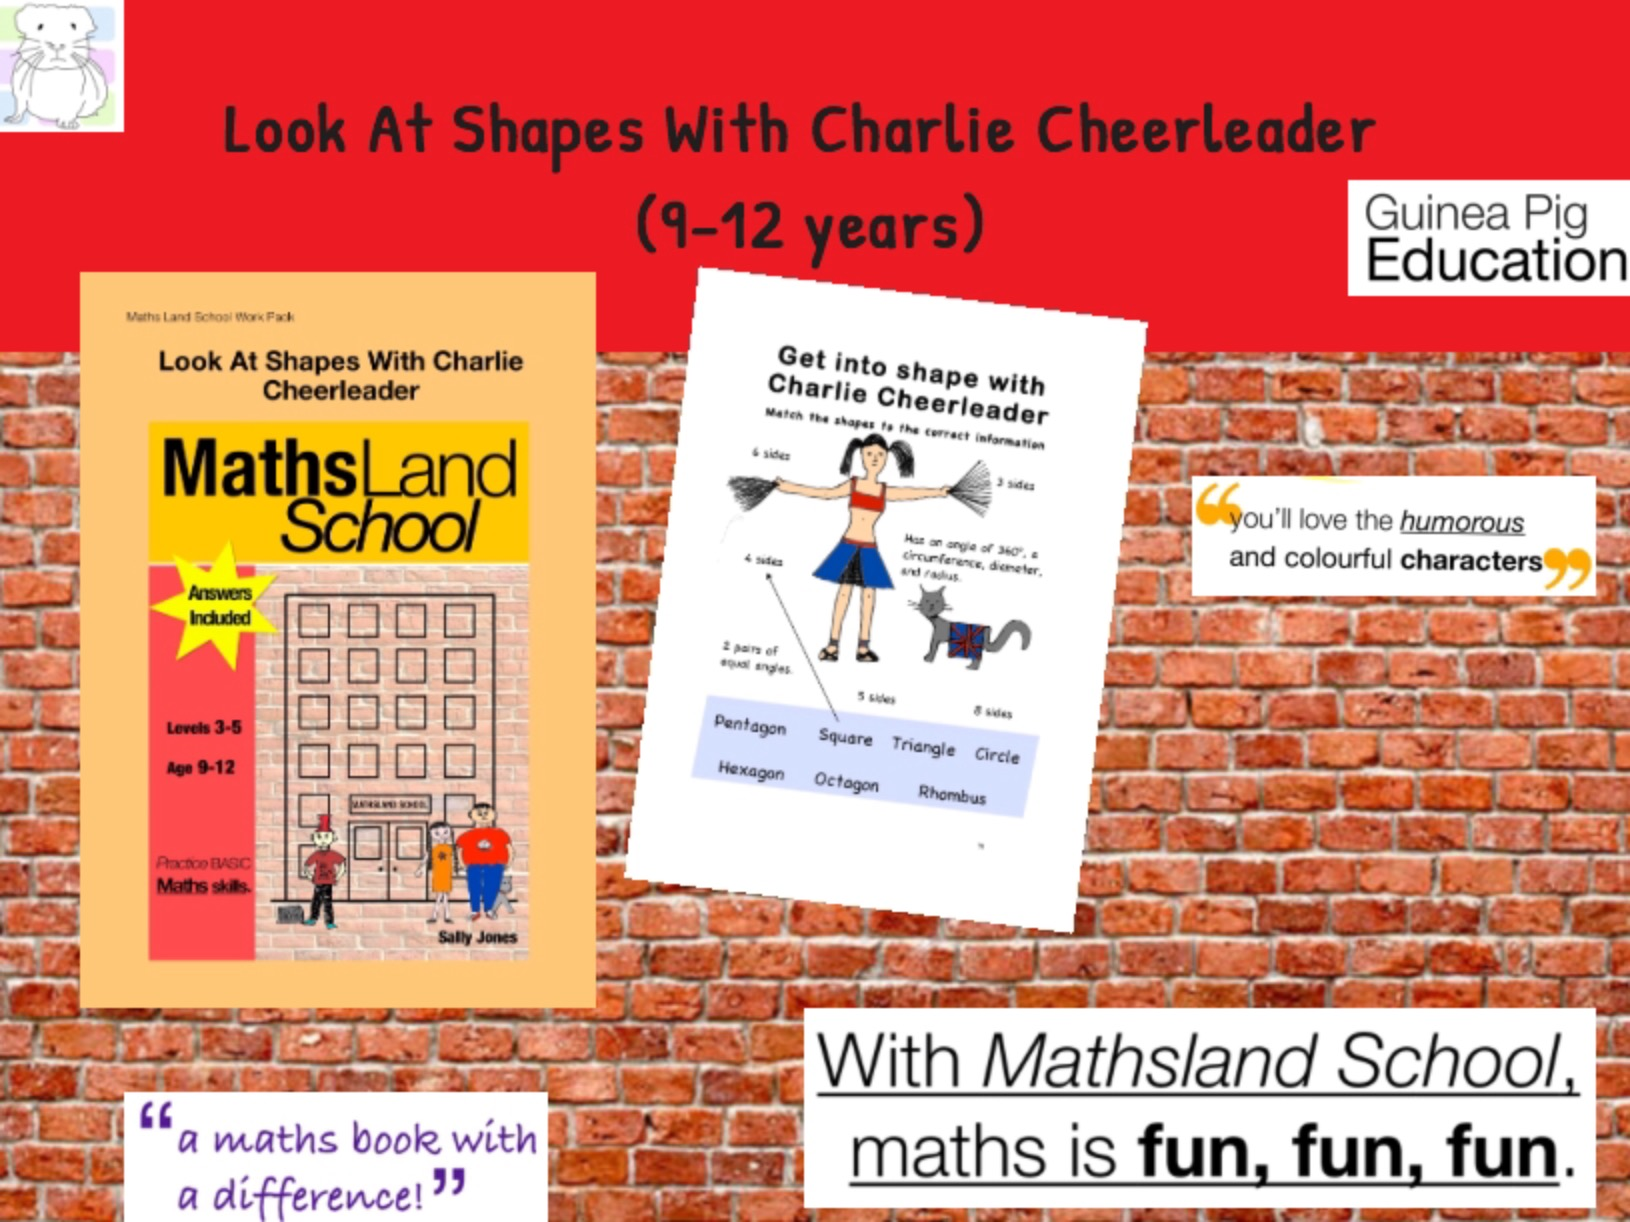 Look At Shapes With Charlie Cheerleader (9-12 years)